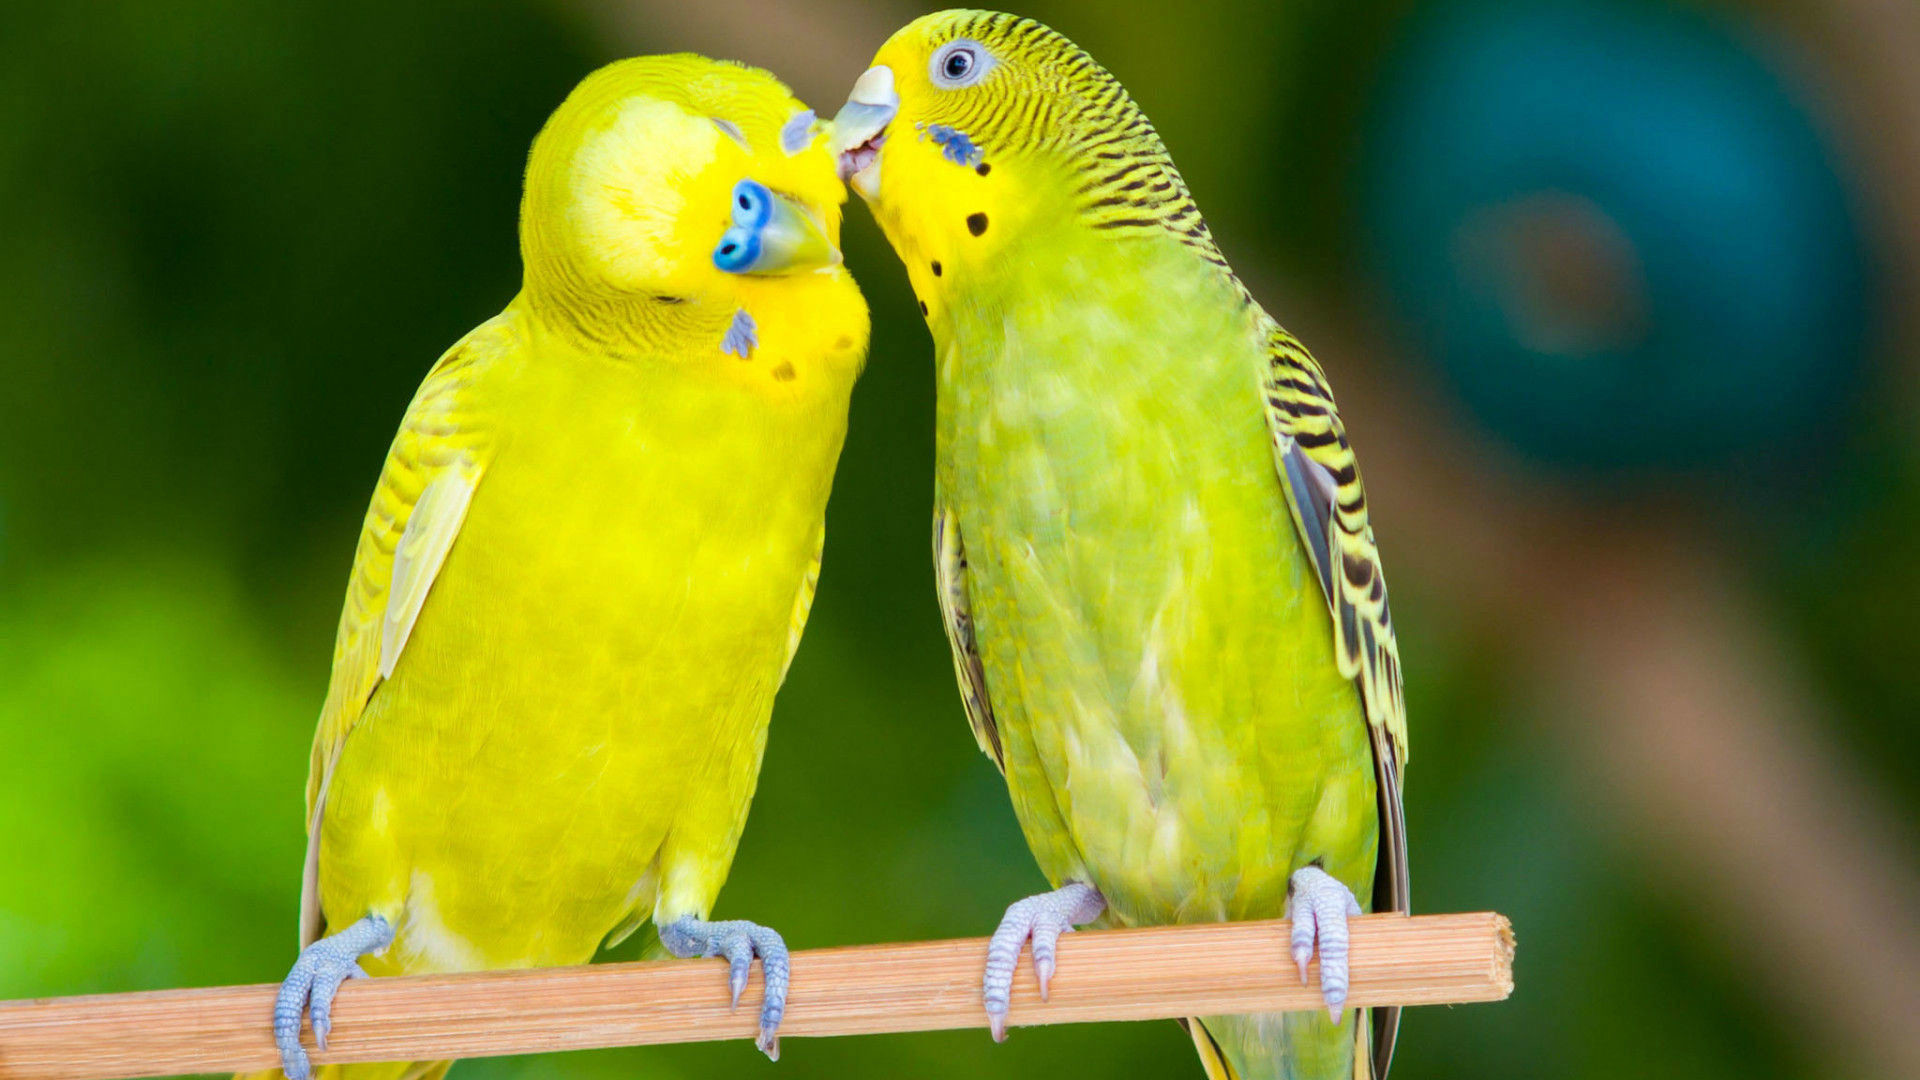 Love Birds Wallpaper Free Download For Pc: Lovely Birds Wallpaper ·① WallpaperTag